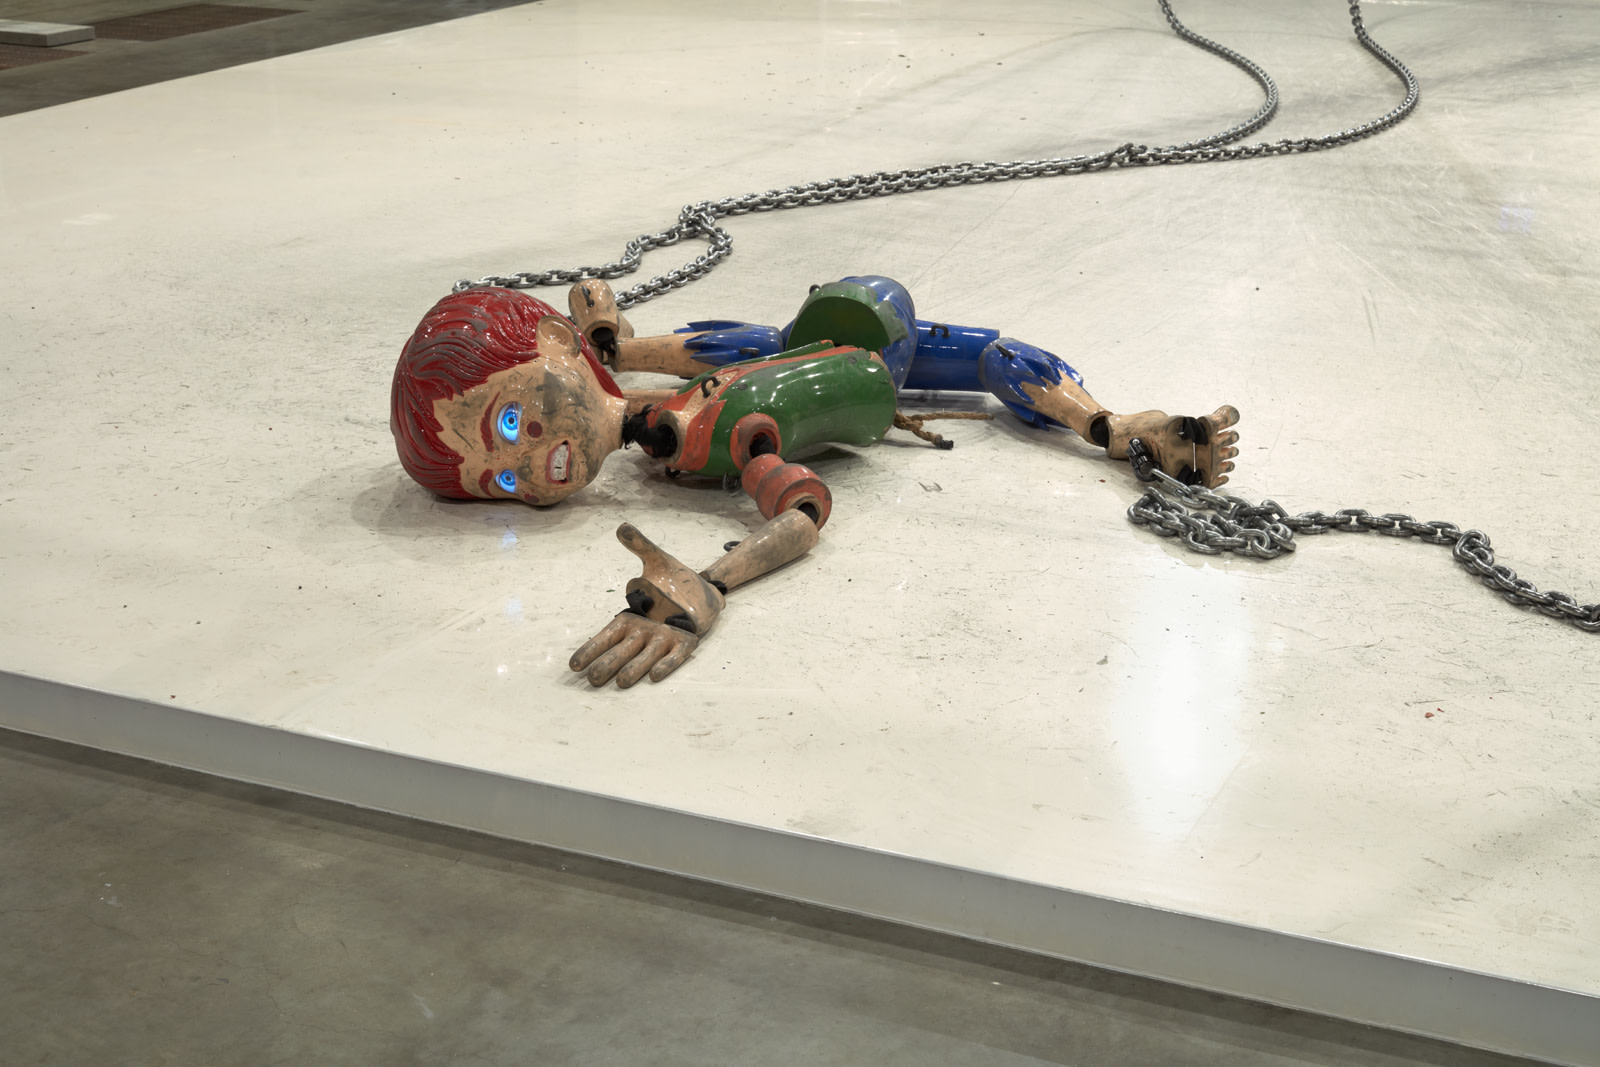 """<div class=""""artwork_caption""""><p>Colored<em> sculpture</em>, 2016, installation view, The Tanks, Tate Modern, 3 May - 31 August 2018</p><p>Mixed media</p><p>Overall dimensions vary with each installation</p><p>Photo: Robert Glowacki</p></div>"""